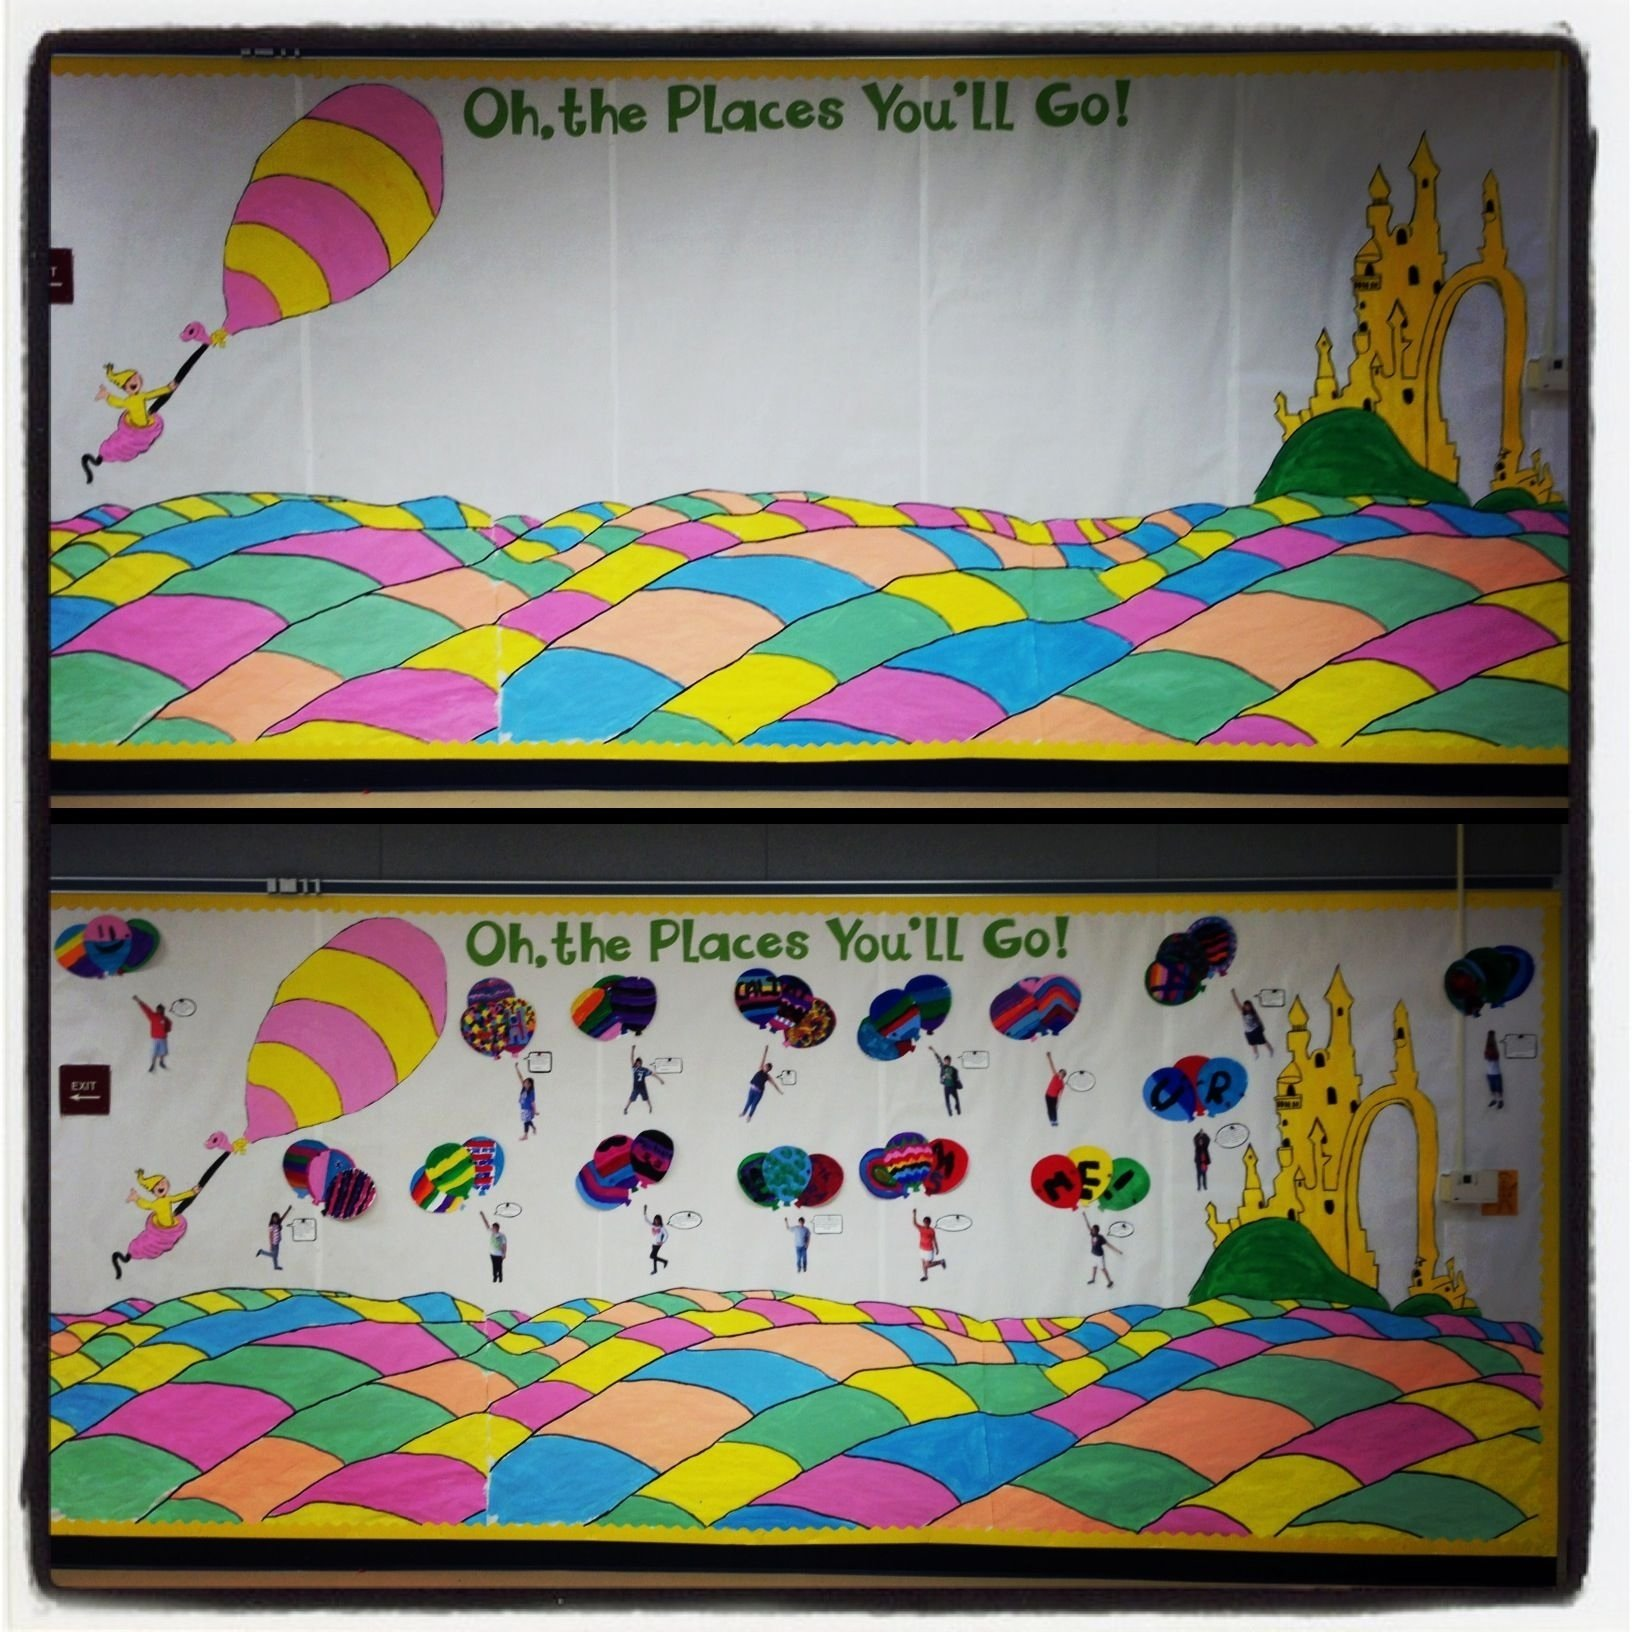 10 Lovable Oh The Places You Ll Go Bulletin Board Ideas oh the places youll go bulletin board bulletin boards